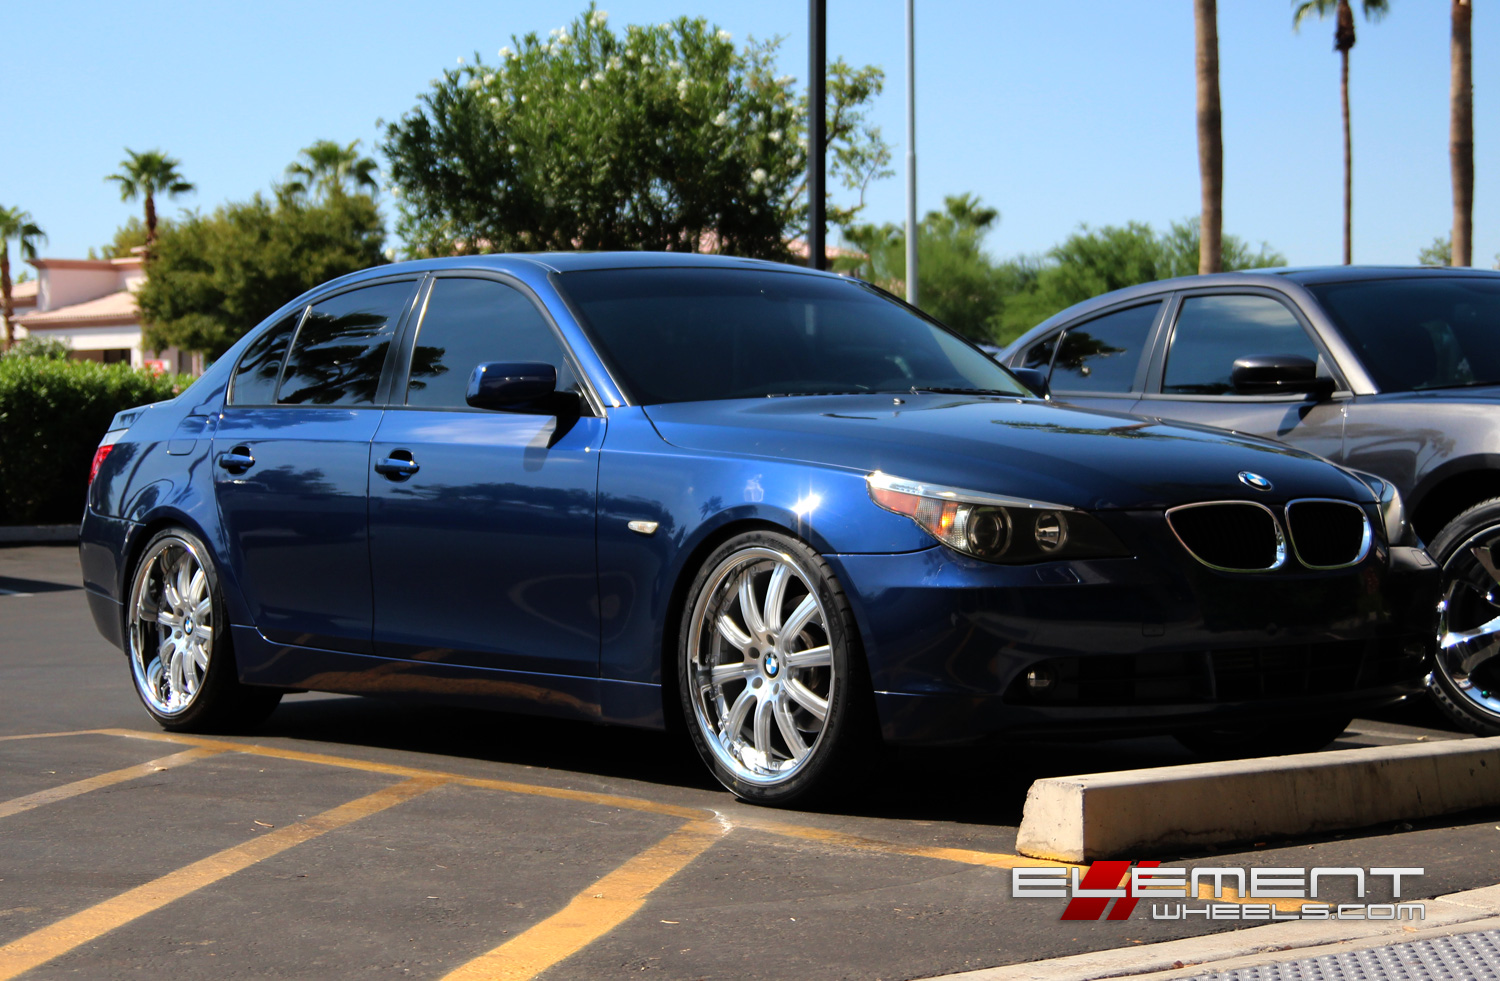 Bmw 5 Series Wheels Custom Rim And Tire Packages